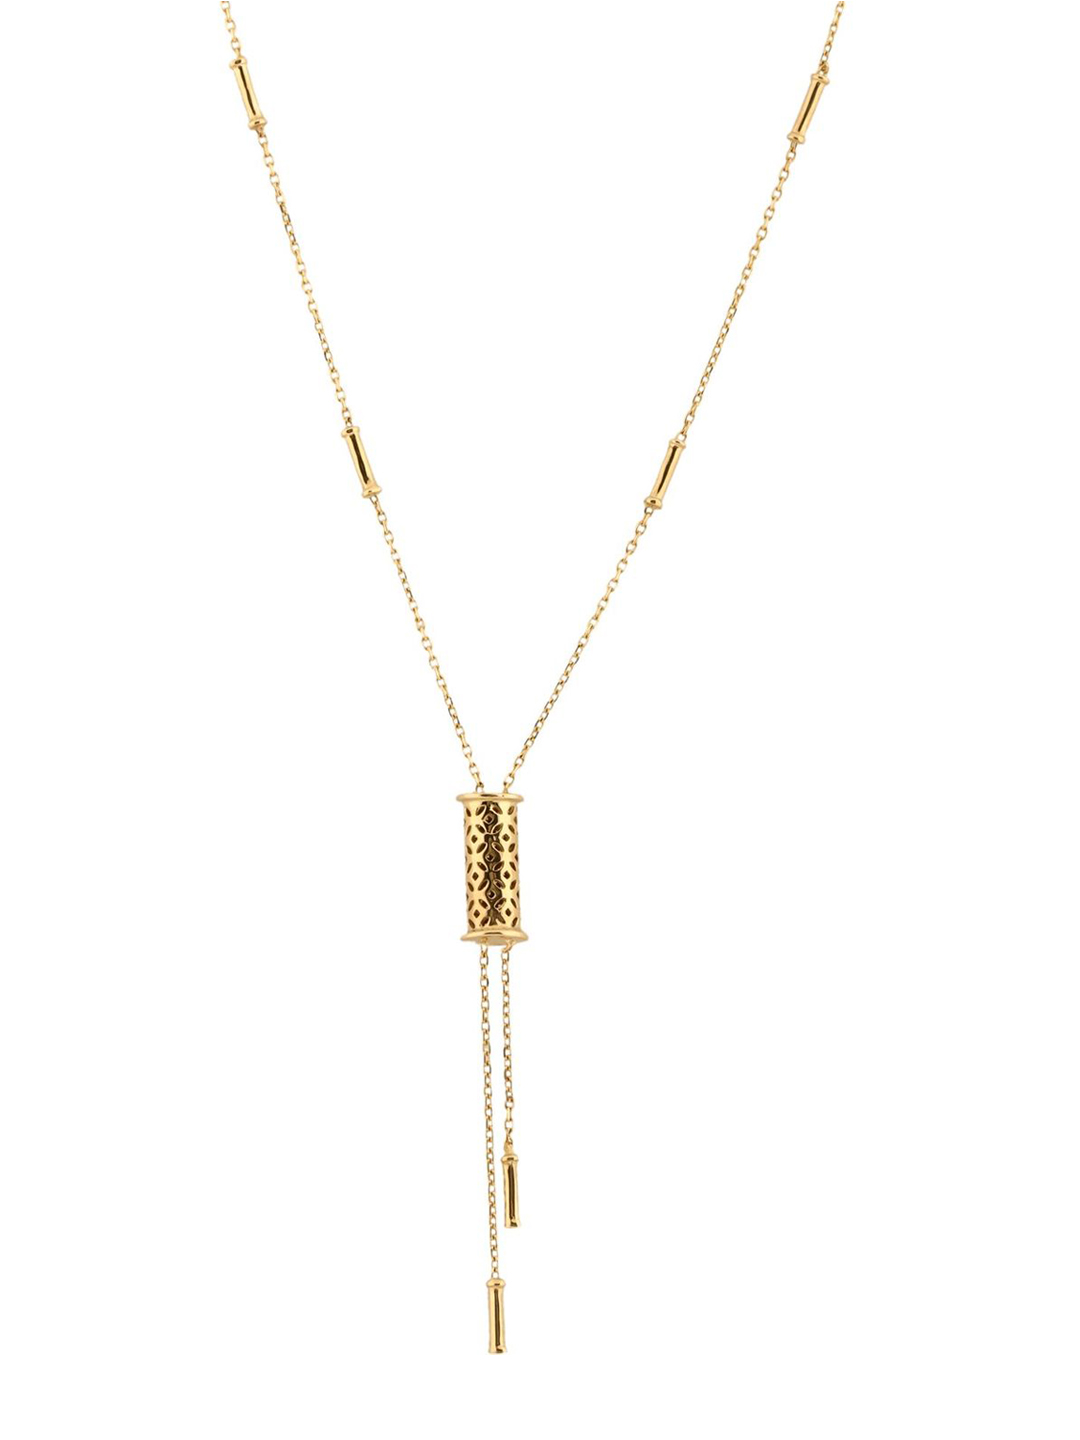 Mia by Tanishq 14KT Yellow Gold Necklace Price in India